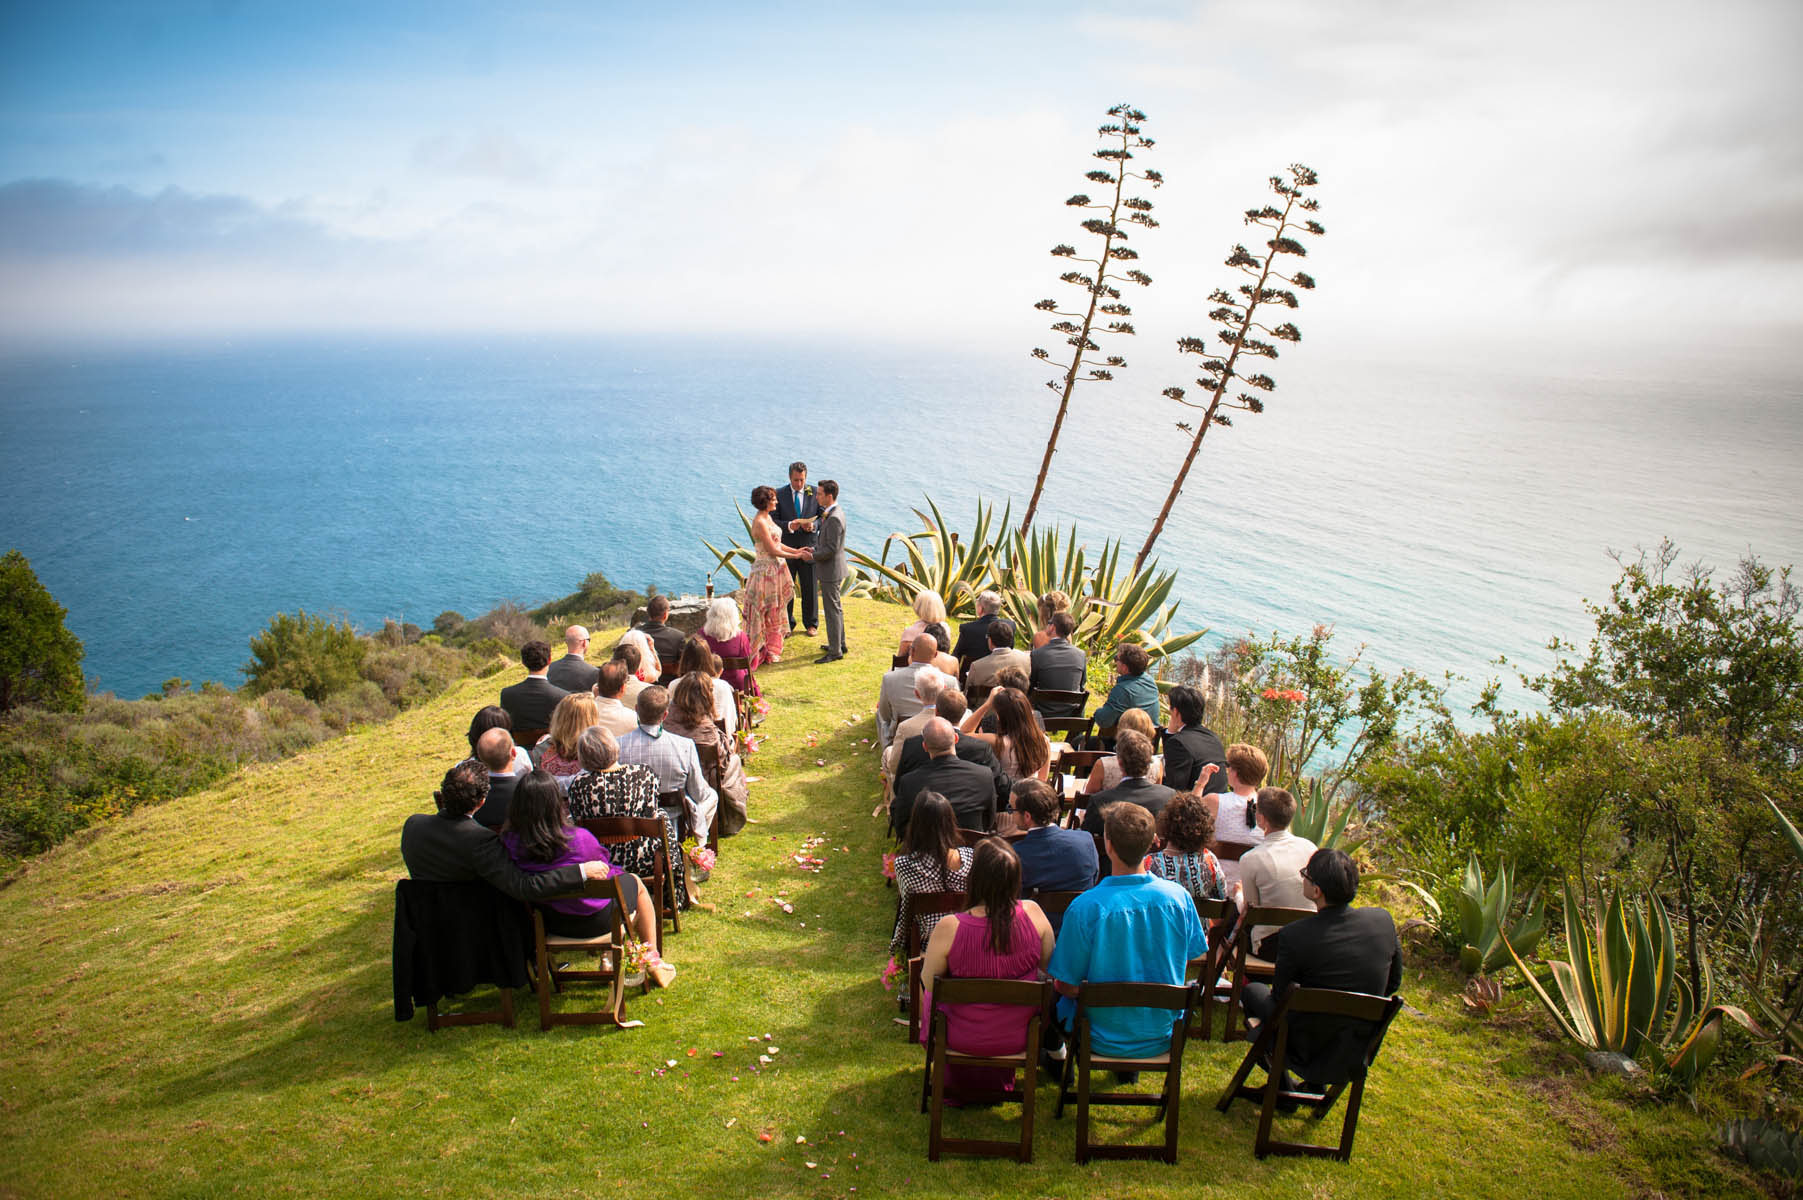 This was an amazing backdrop for a ceremony, the grand views of Big Sur as seen from Point 16.